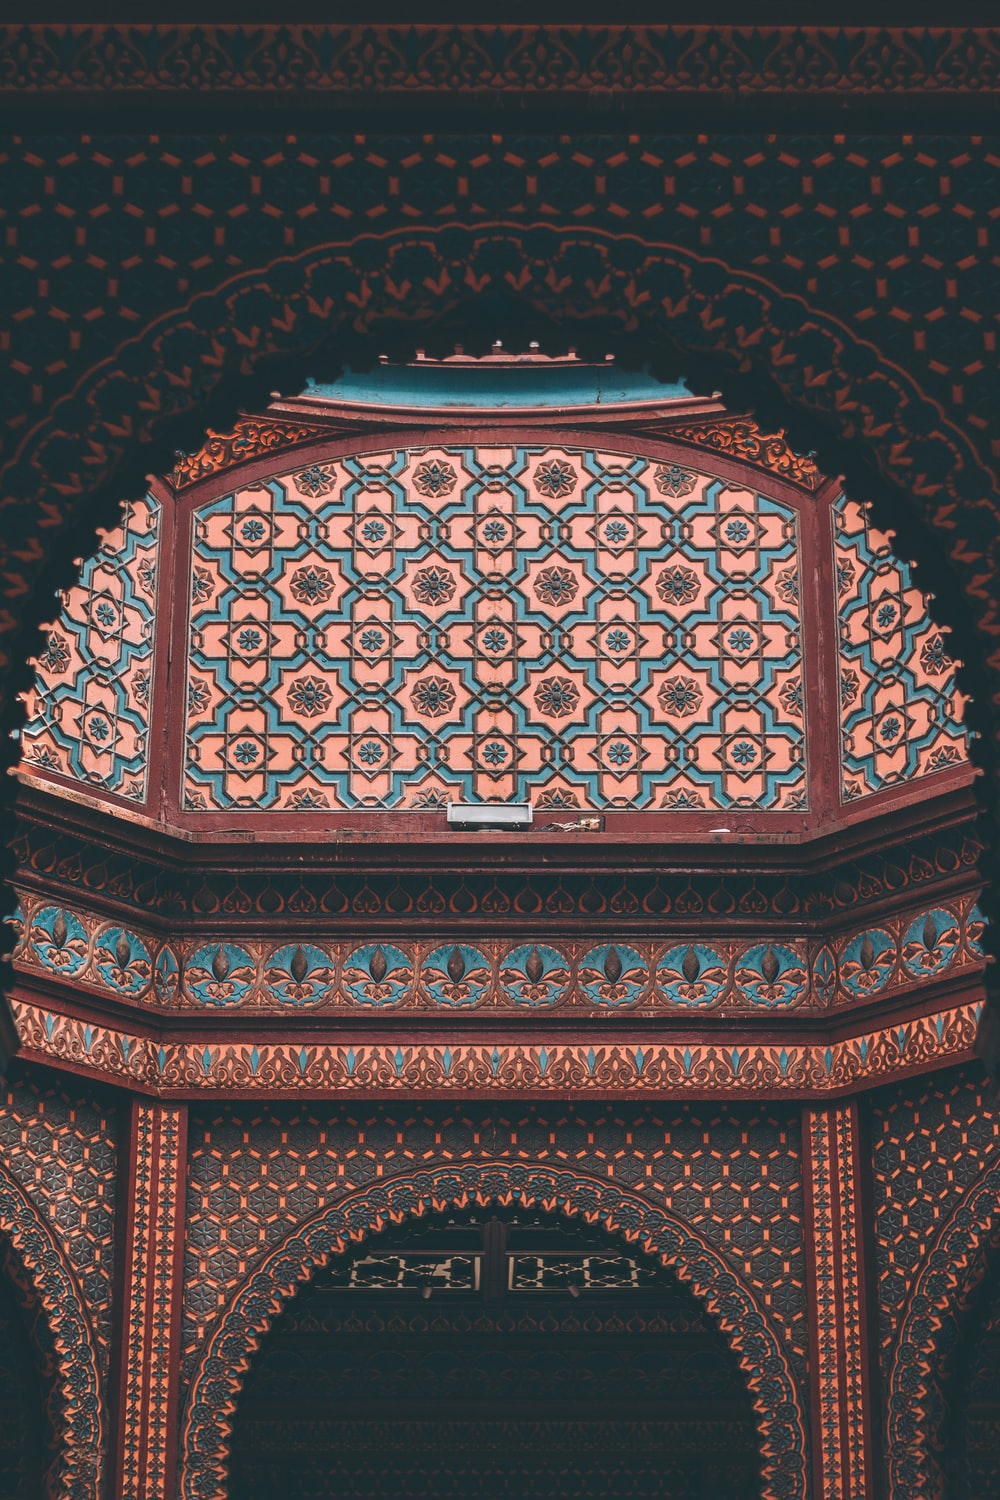 teal and pink dome interior